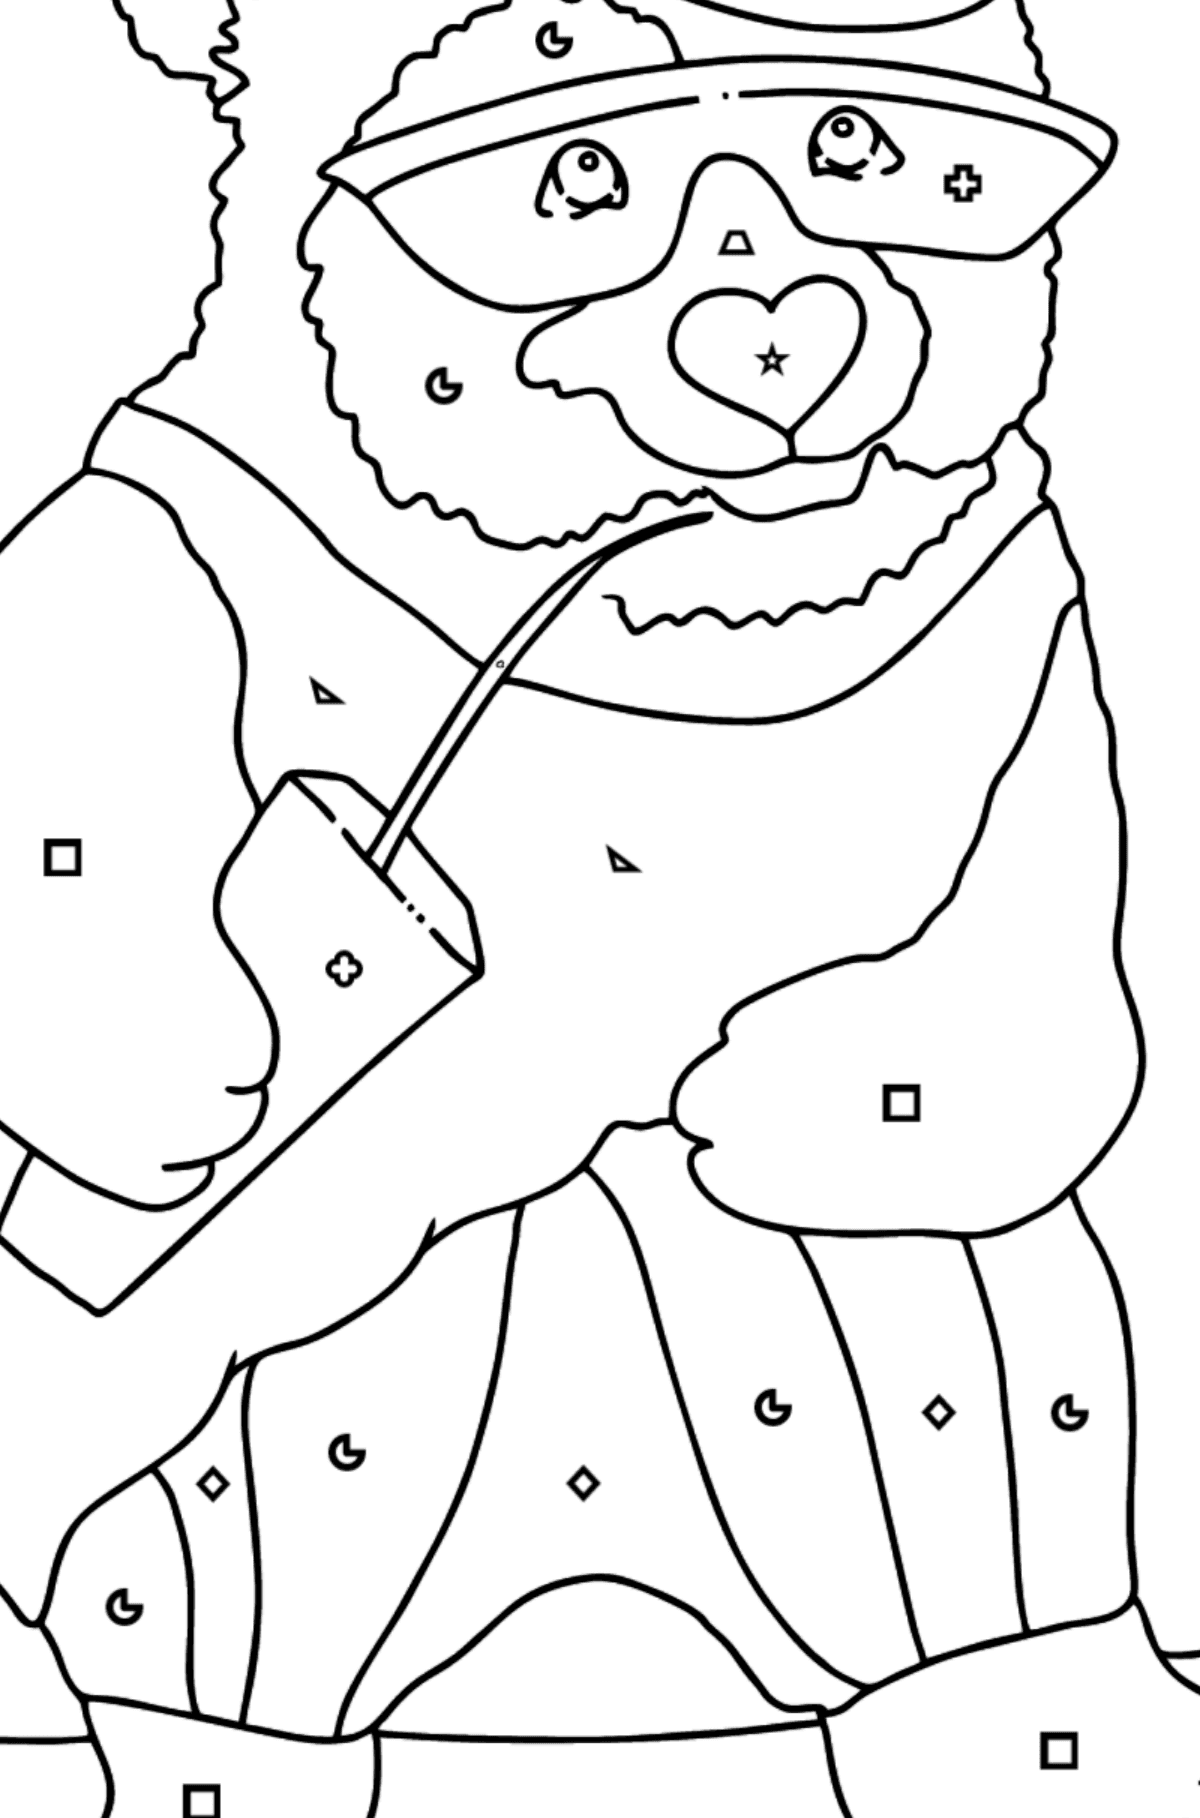 Coloring Page - A Panda is Learning to Ride a Skateboard - Coloring by Geometric Shapes for Kids